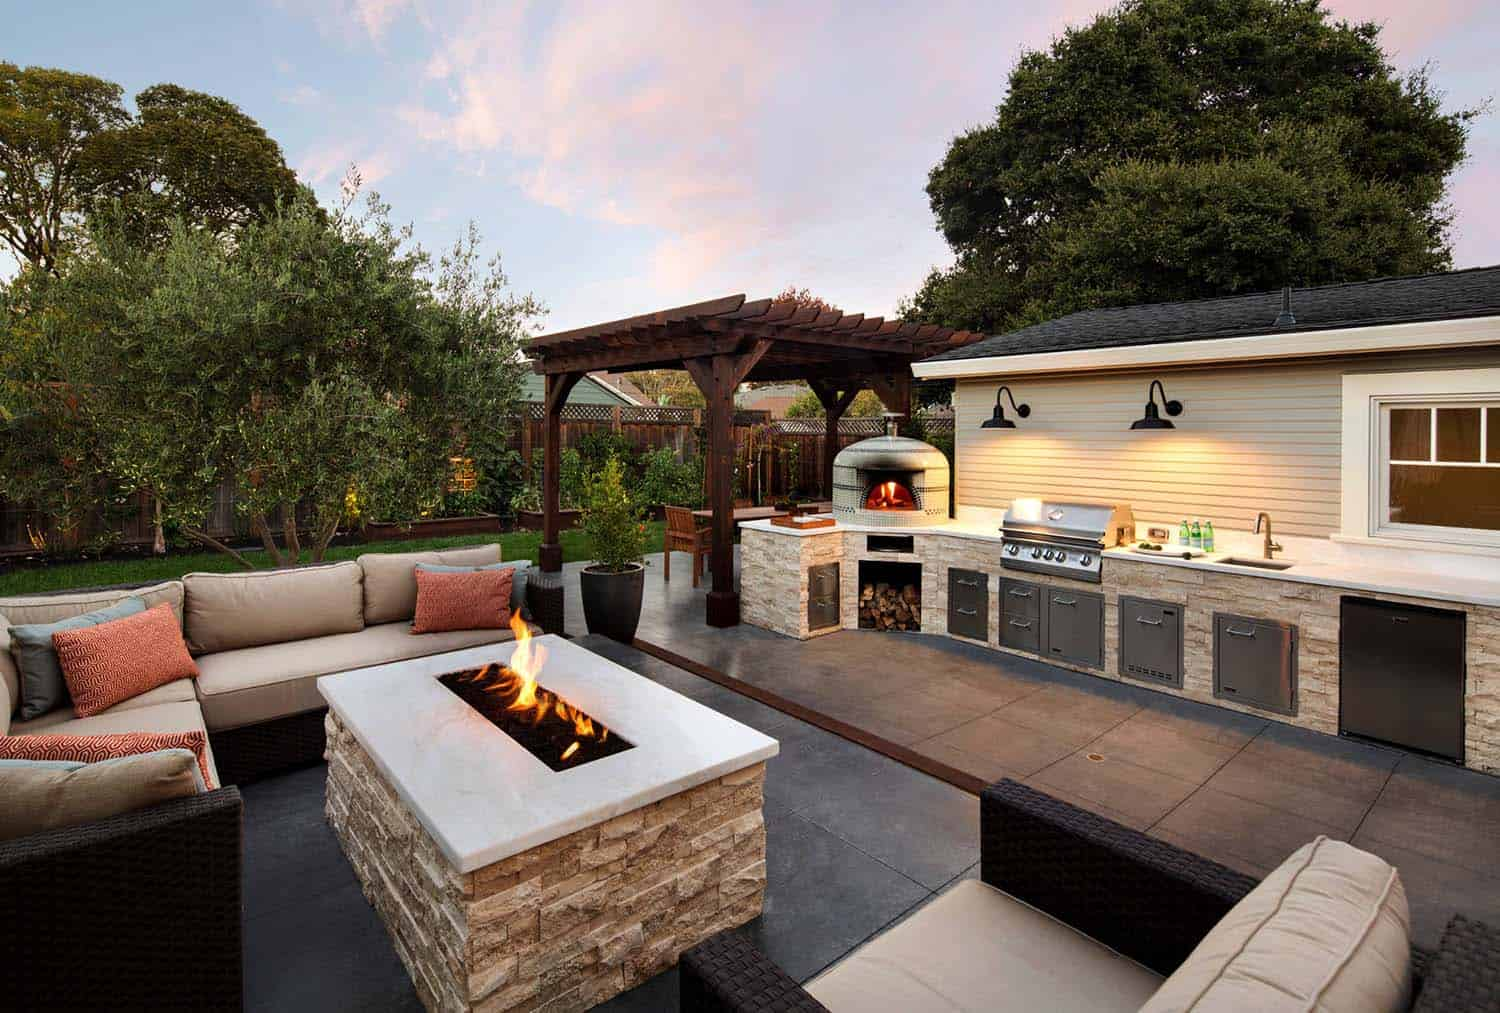 33 Fabulous Ideas For Creating Beautiful Outdoor Living Spaces on Garden Living Space id=34458